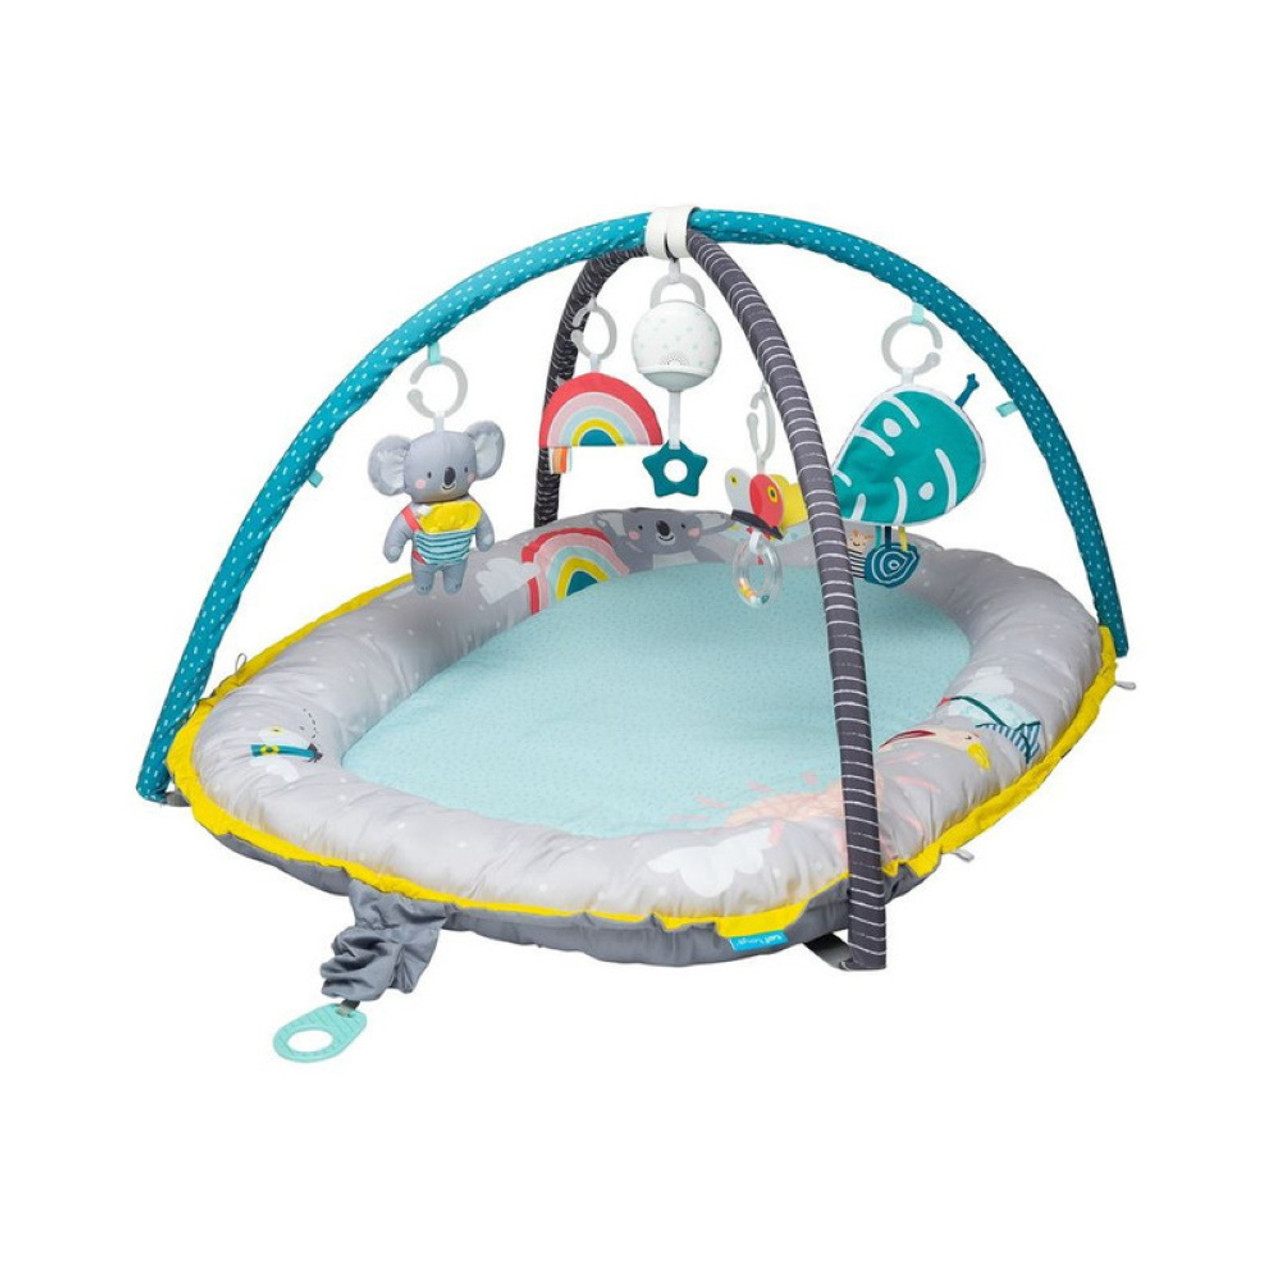 TAF Toys Koala Musical Cosy Gym is a richly colorful & thickly padded cozy gym.